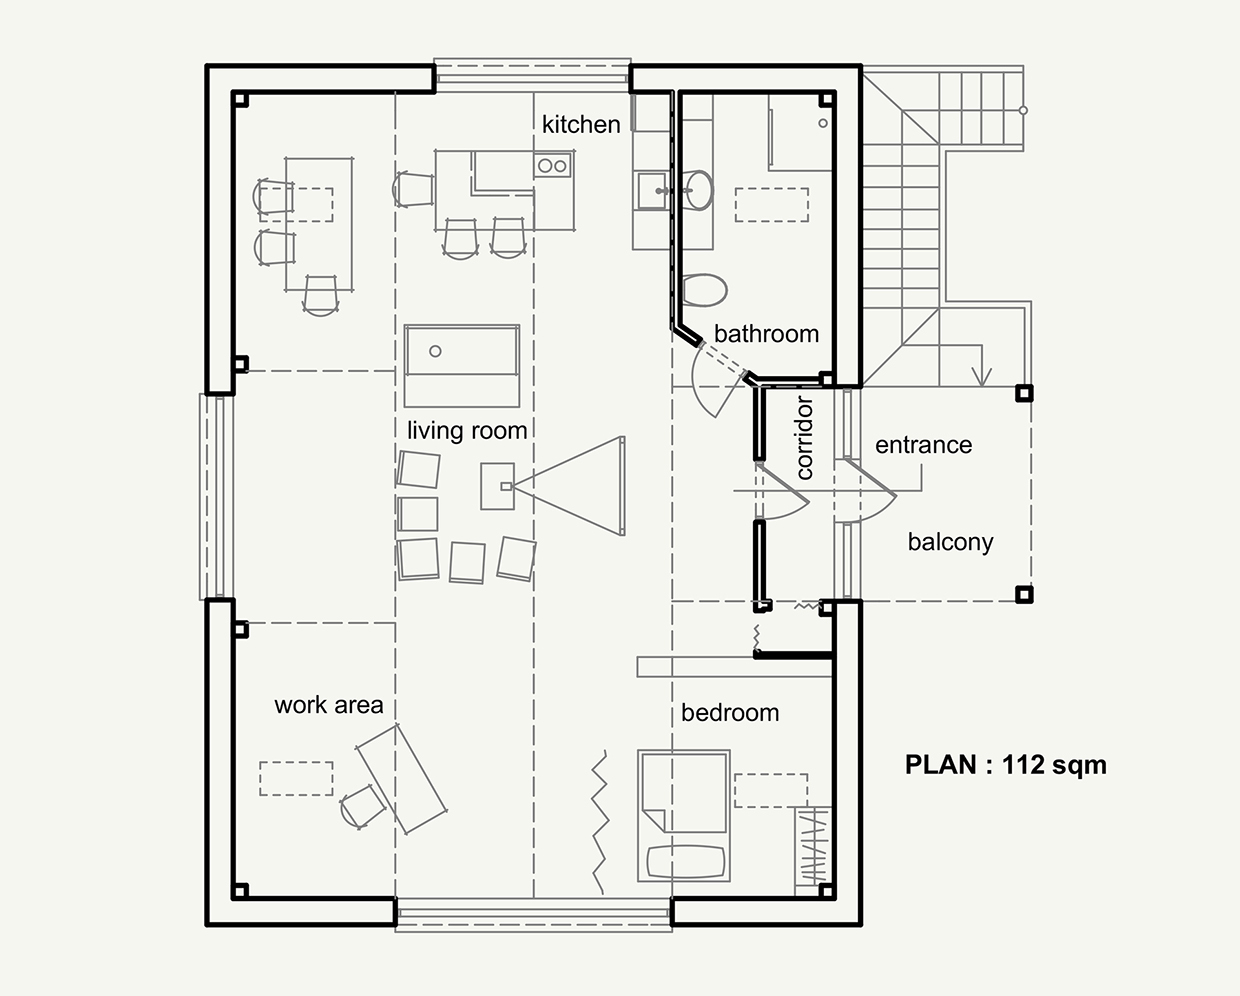 Attic Home Floorplan - 4 stylish homes with slanted ceilings